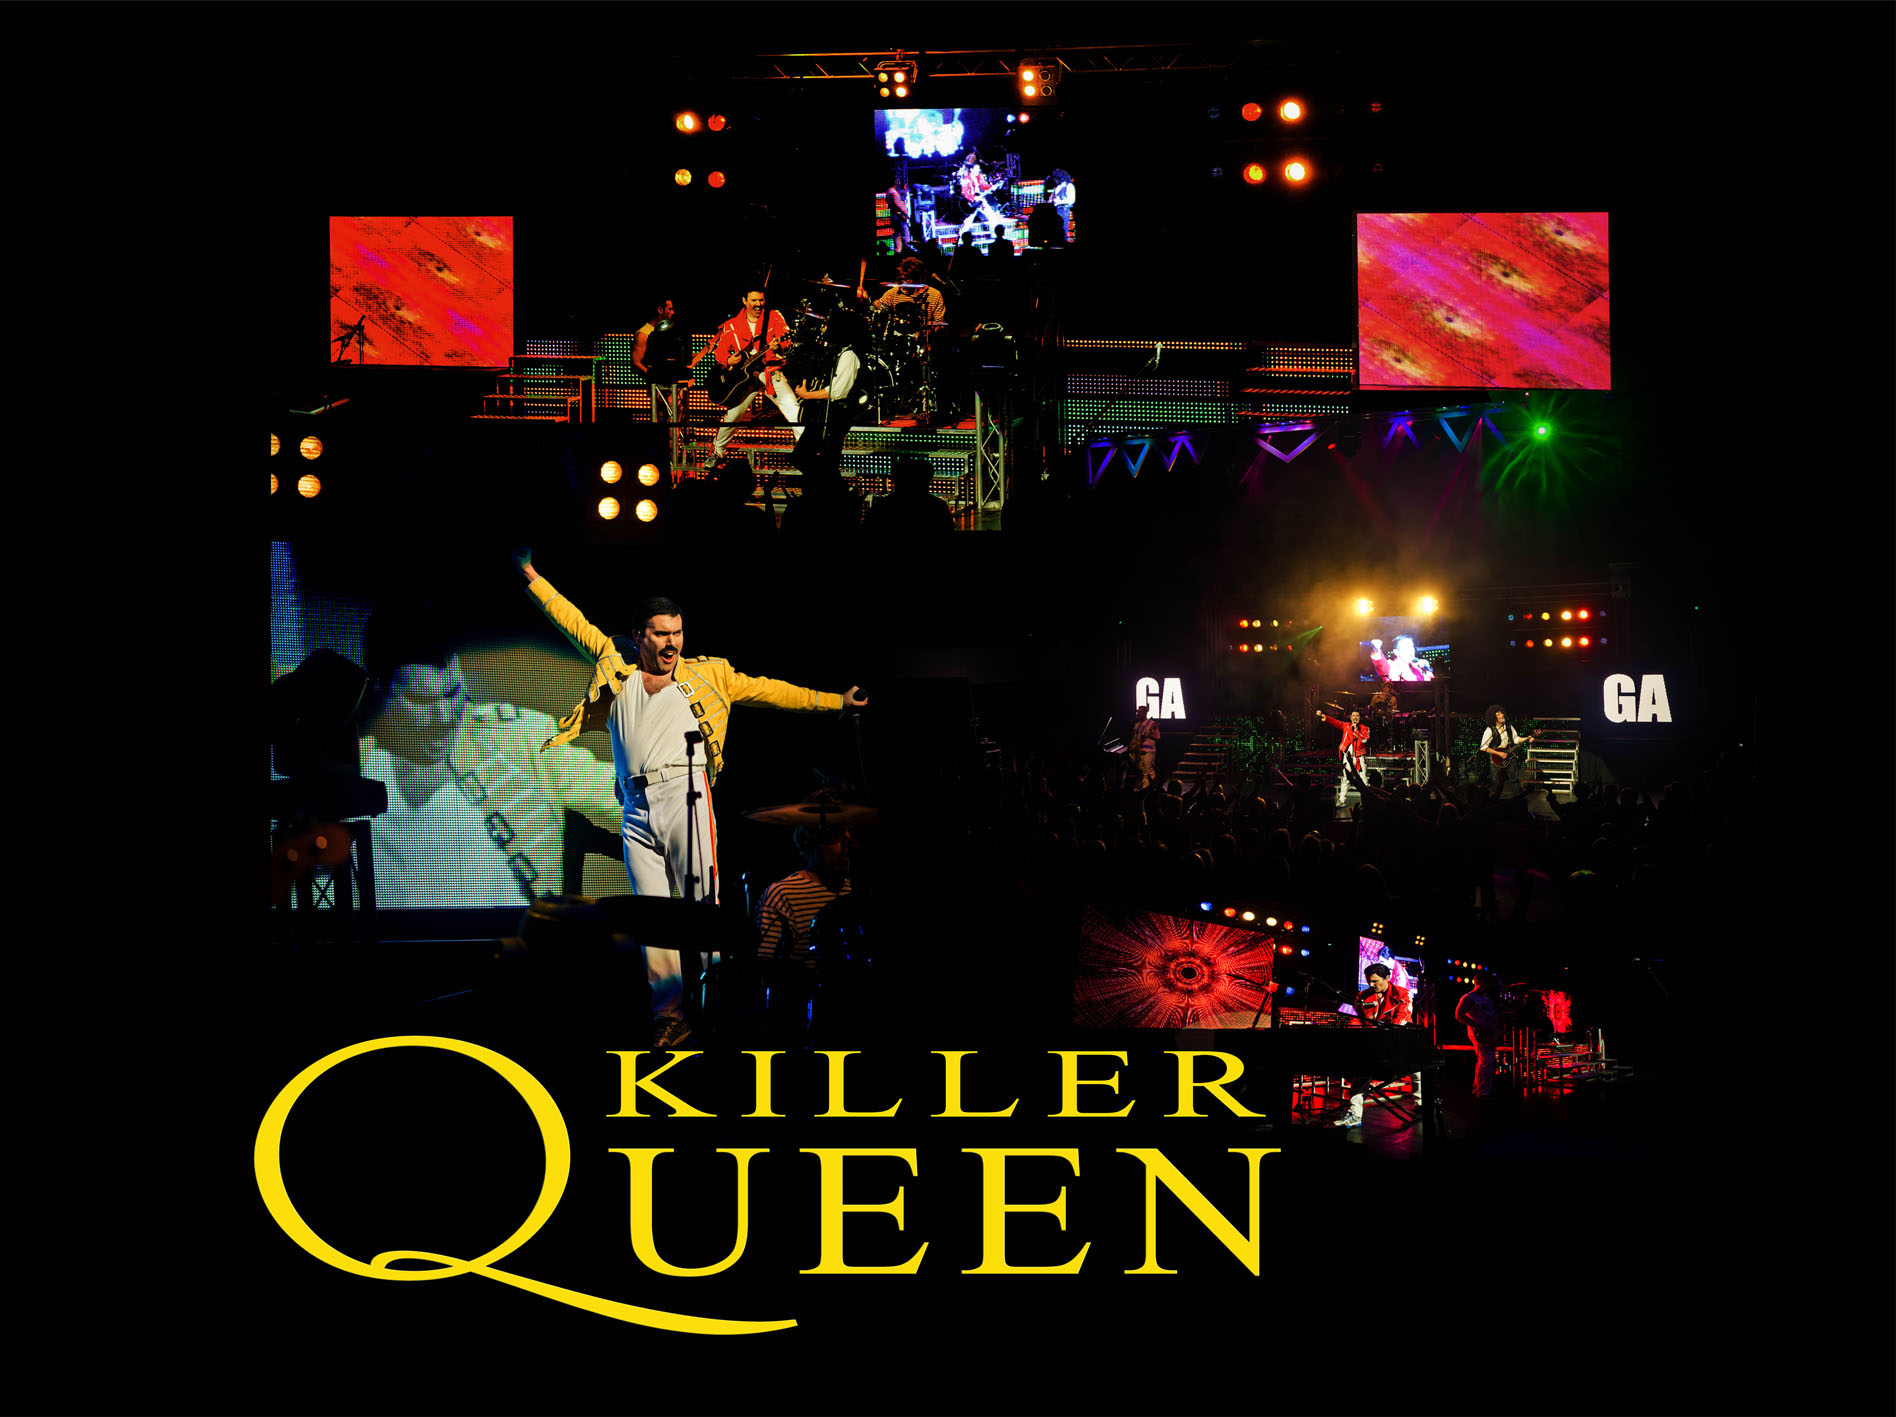 picture Killer Queen - Queen Show from London